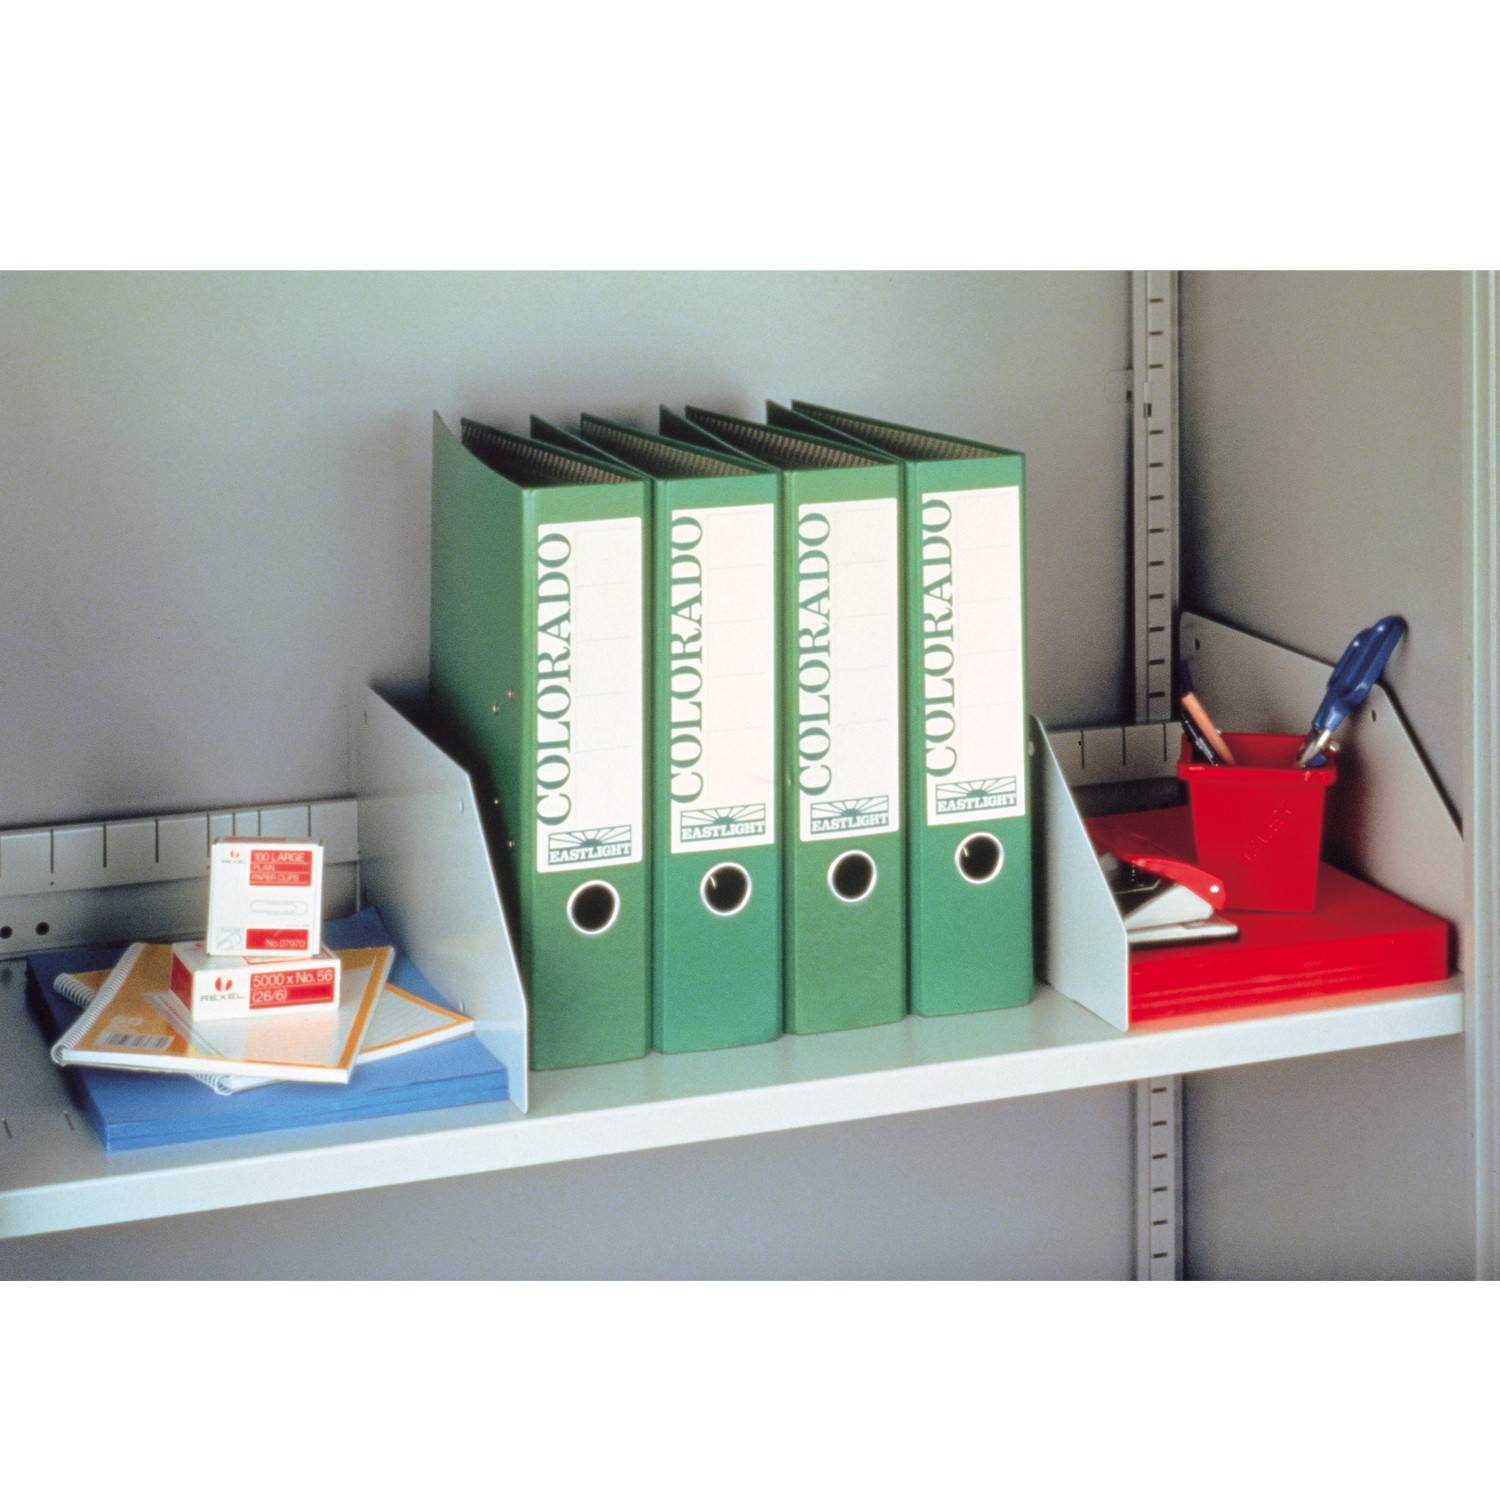 Bisley Internal Storage Organiser